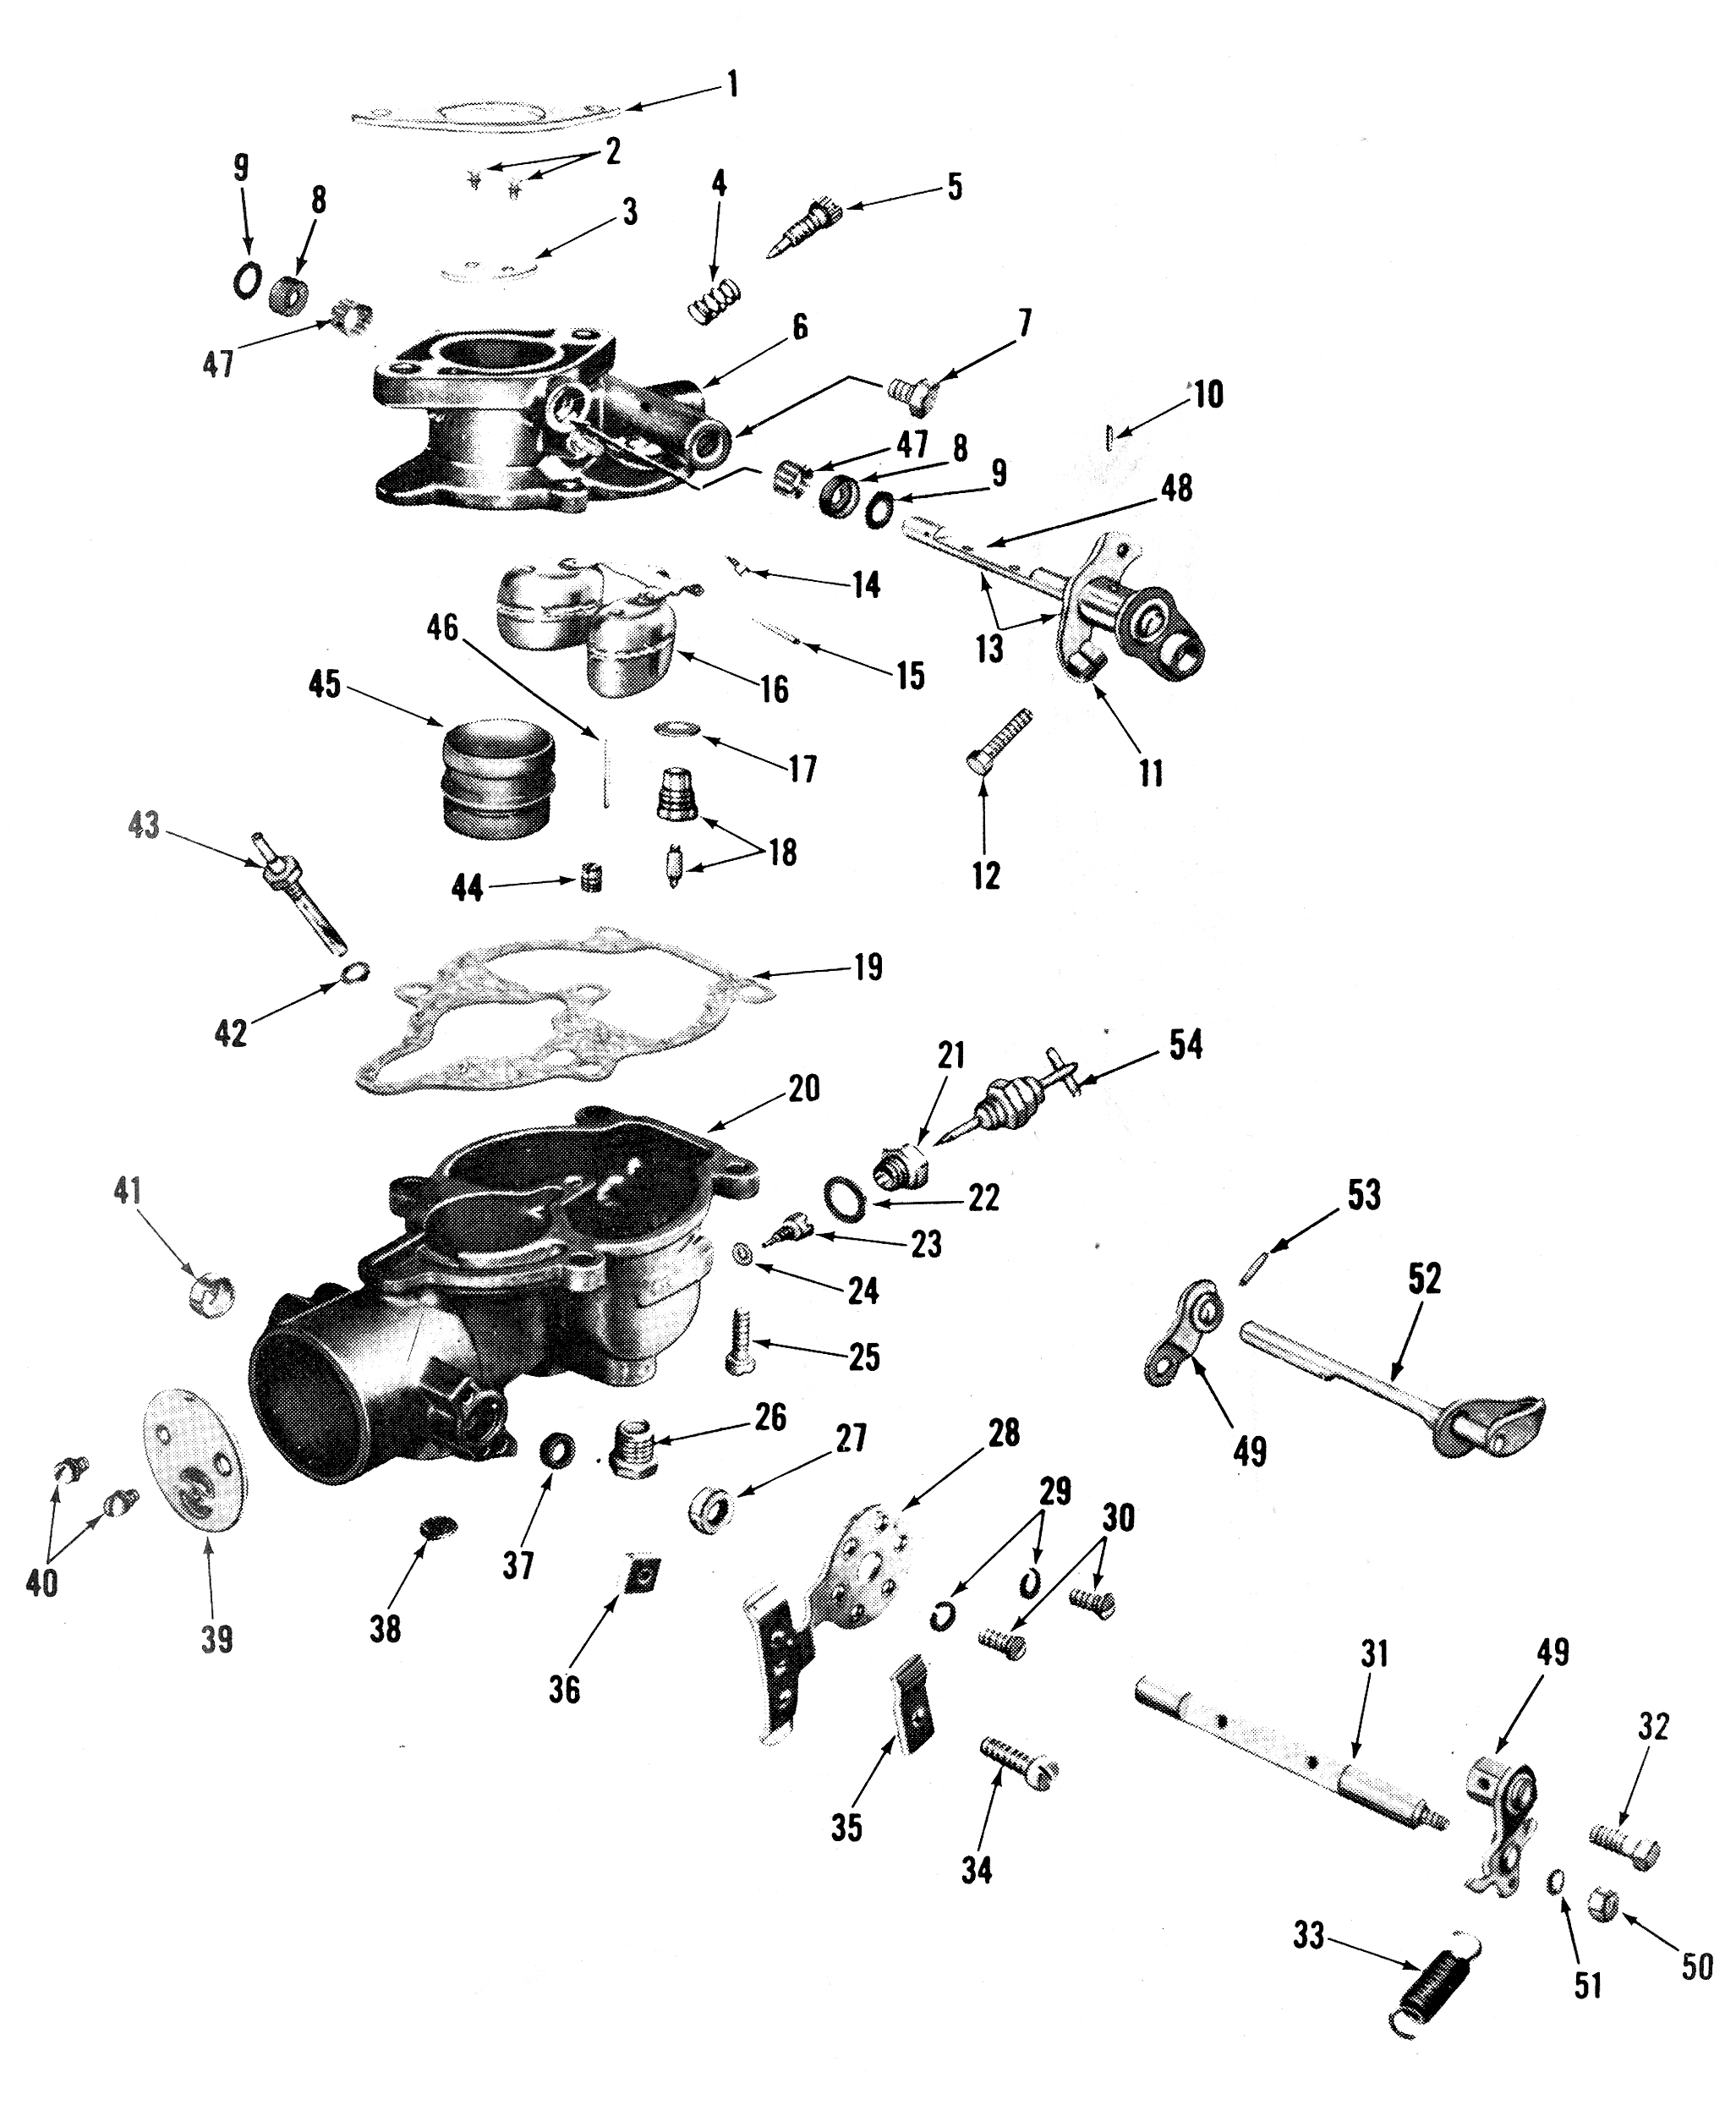 John Deere 68 Parts Diagram